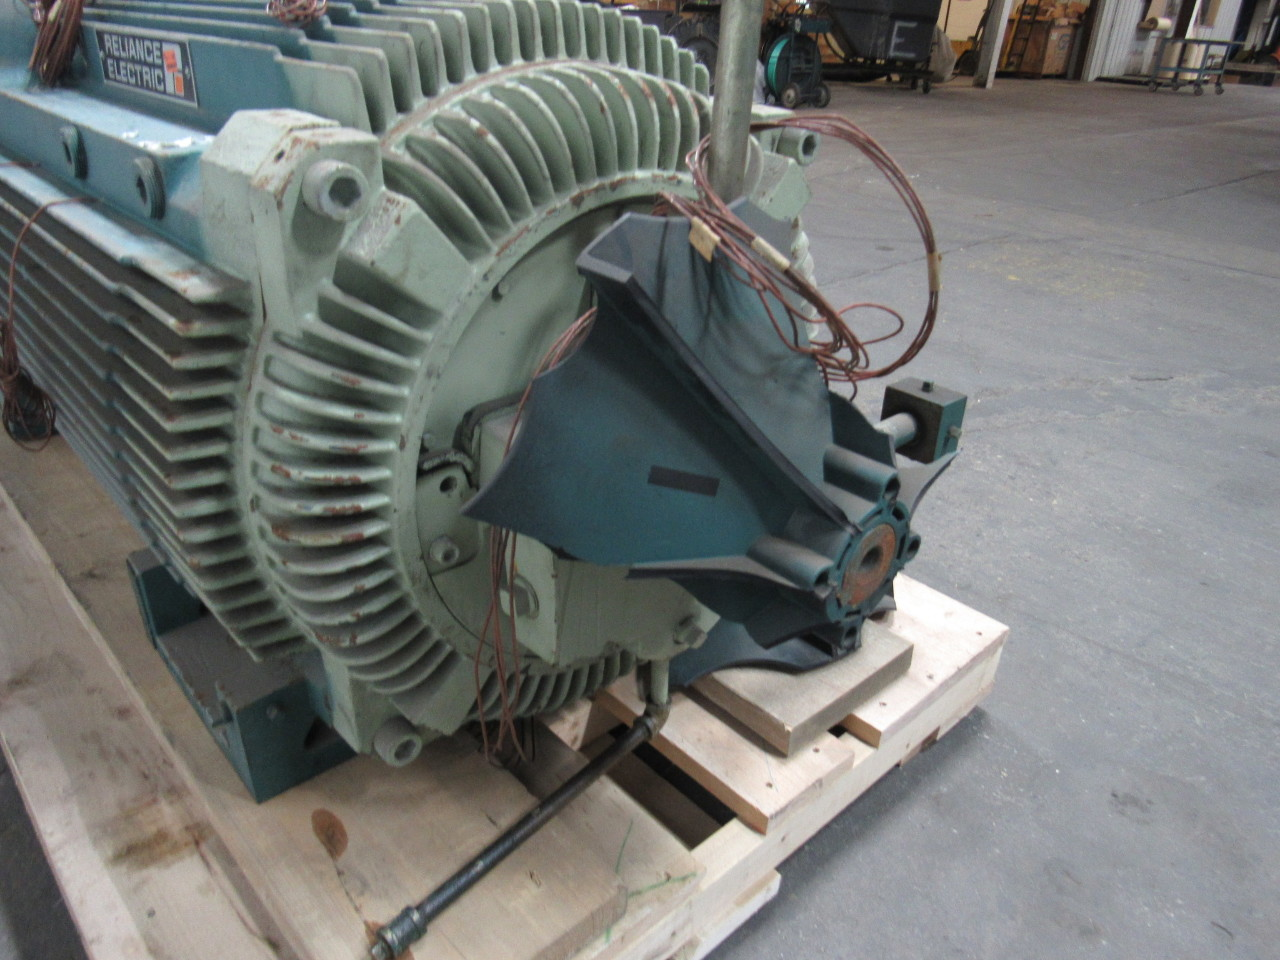 Reliance electric duty master 900 hp ac motor 1791rpm 4000 for Duty master ac motor